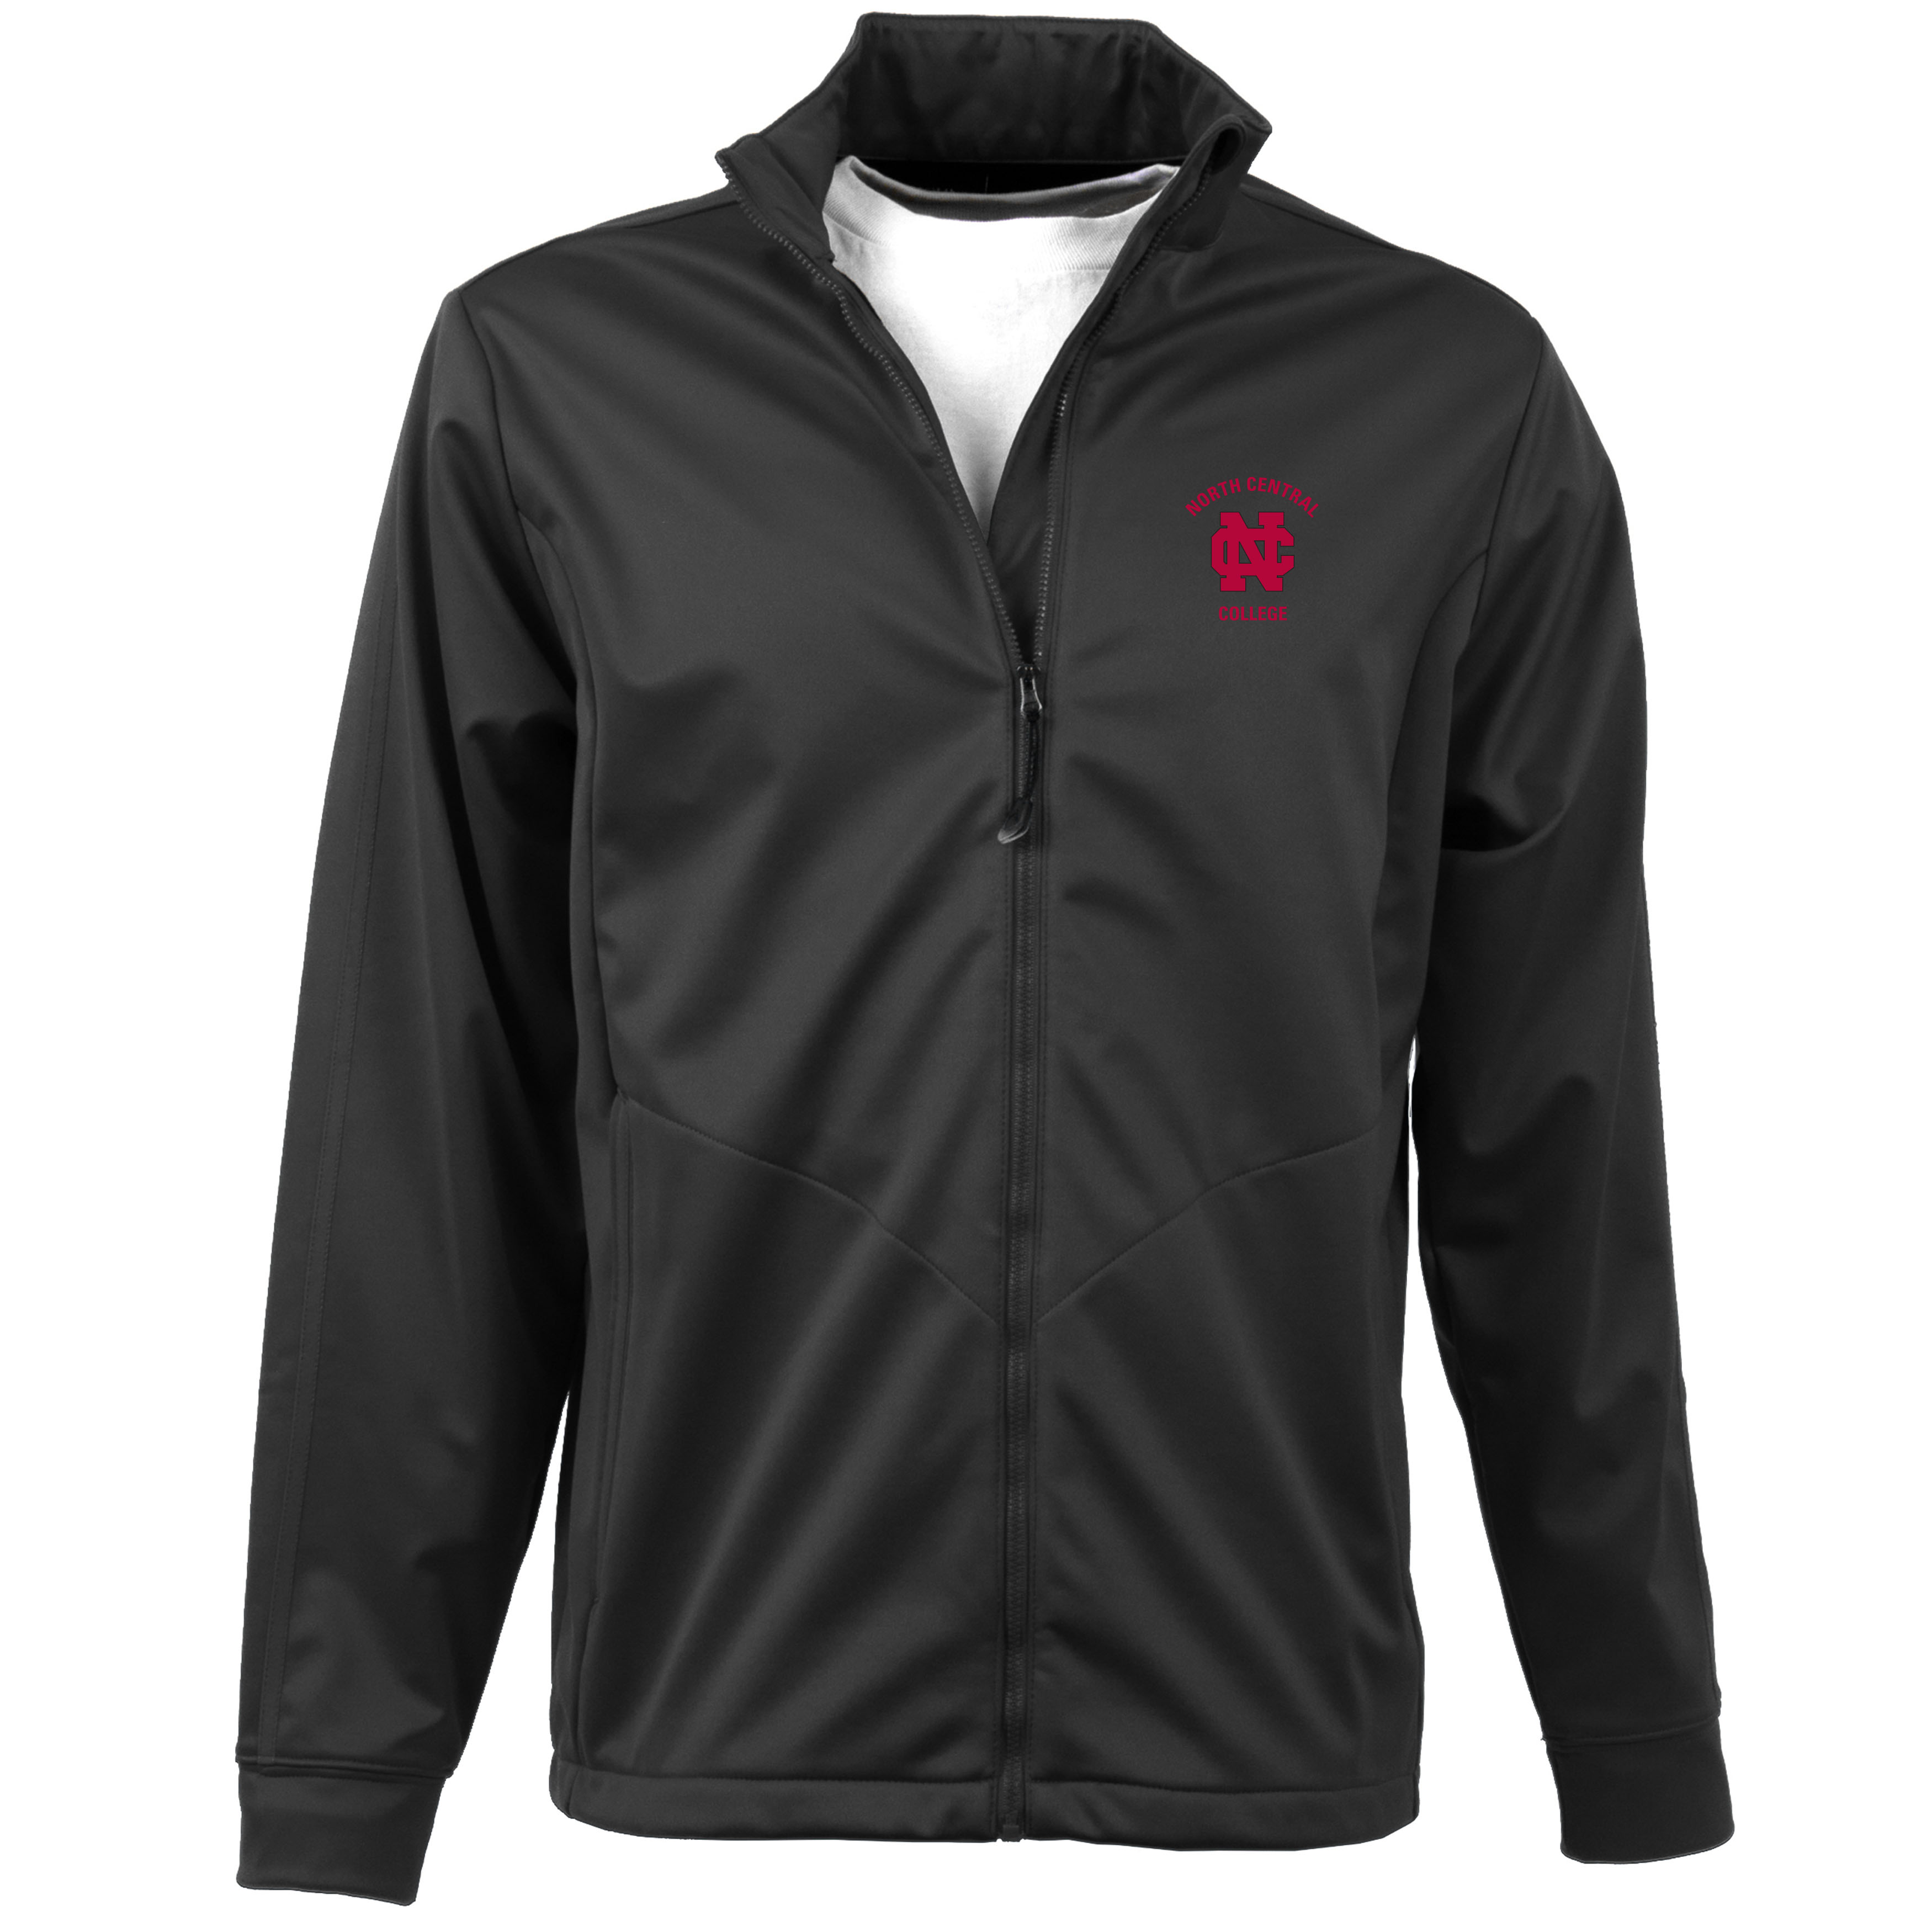 Image for the Golf Jacket by Antigua product